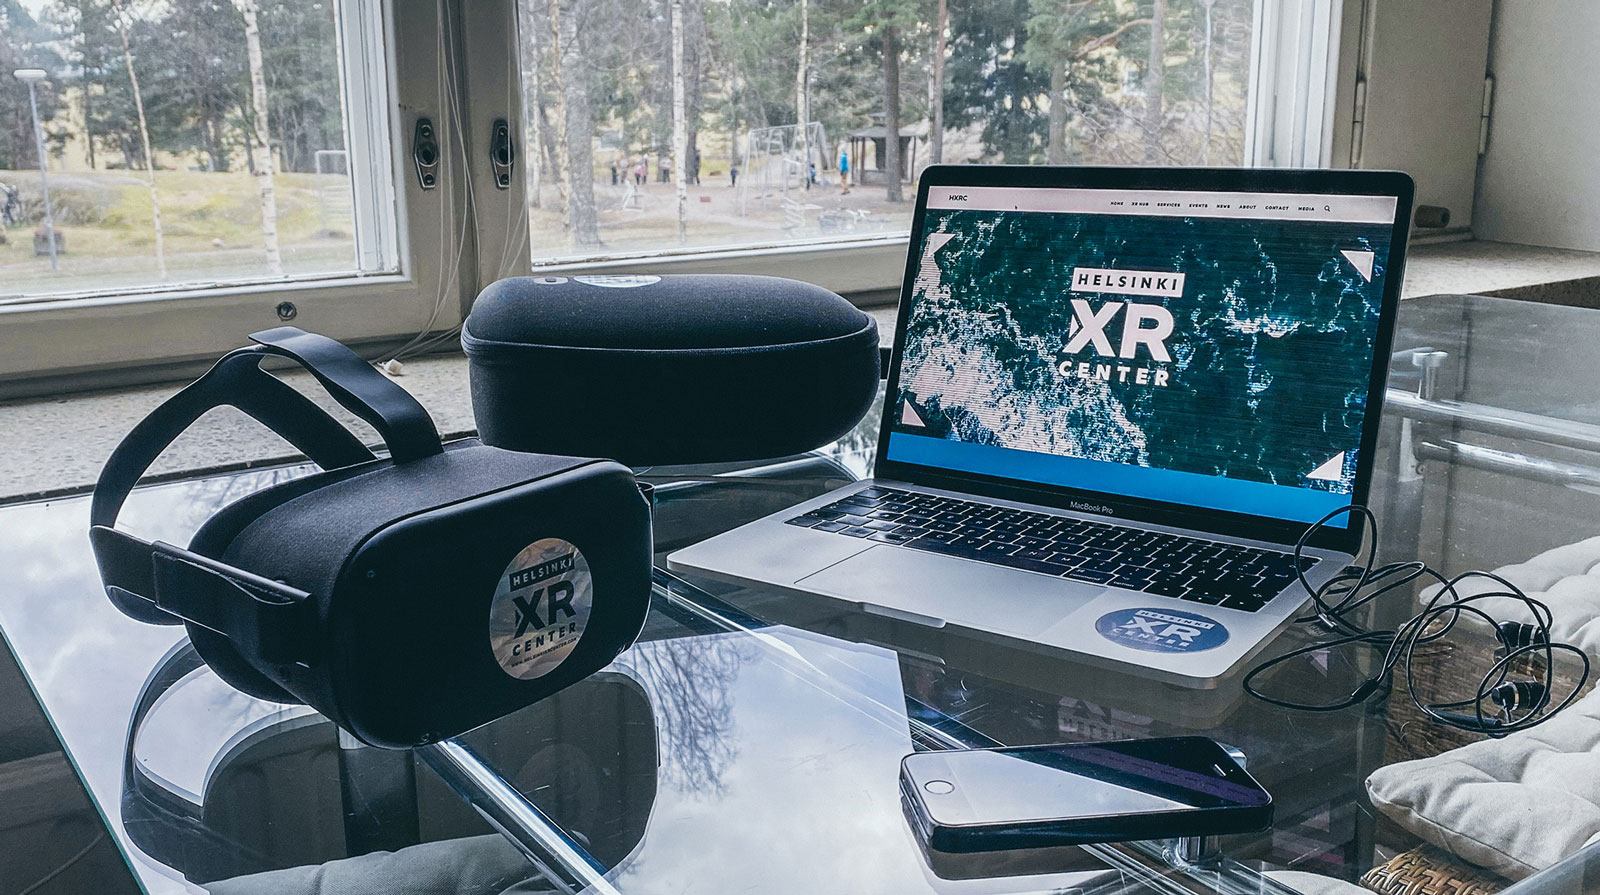 A virtual reality headset, a laptop and a phone on a table in front of a window with a view to a playground surrounded with trees.